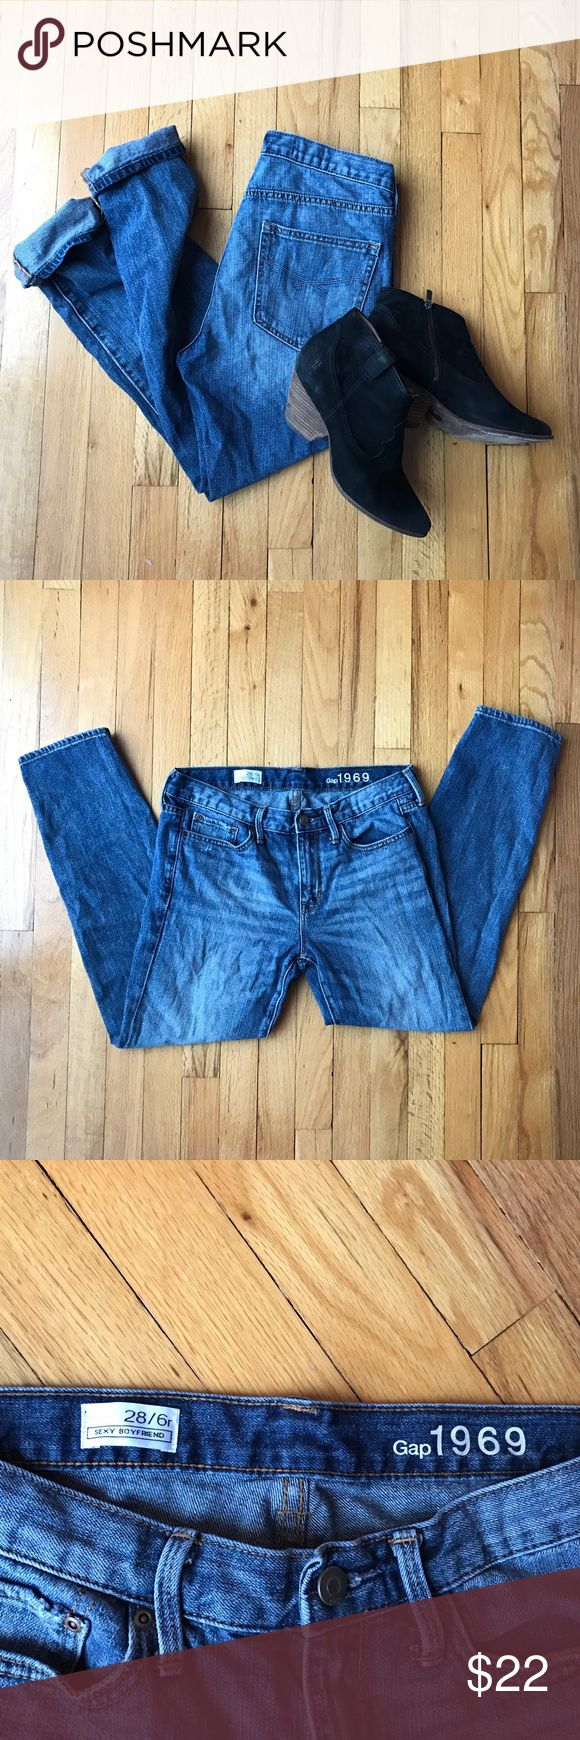 """GAP 1969 sexy boyfriend jeans Amazing pair of GAP """"sexy boyfriend"""" jeans in excellent used condition. Very little wear; no flaws. Perfect distressed medium blue color. So cute with ankle boots or heels! GAP Jeans Boyfriend"""